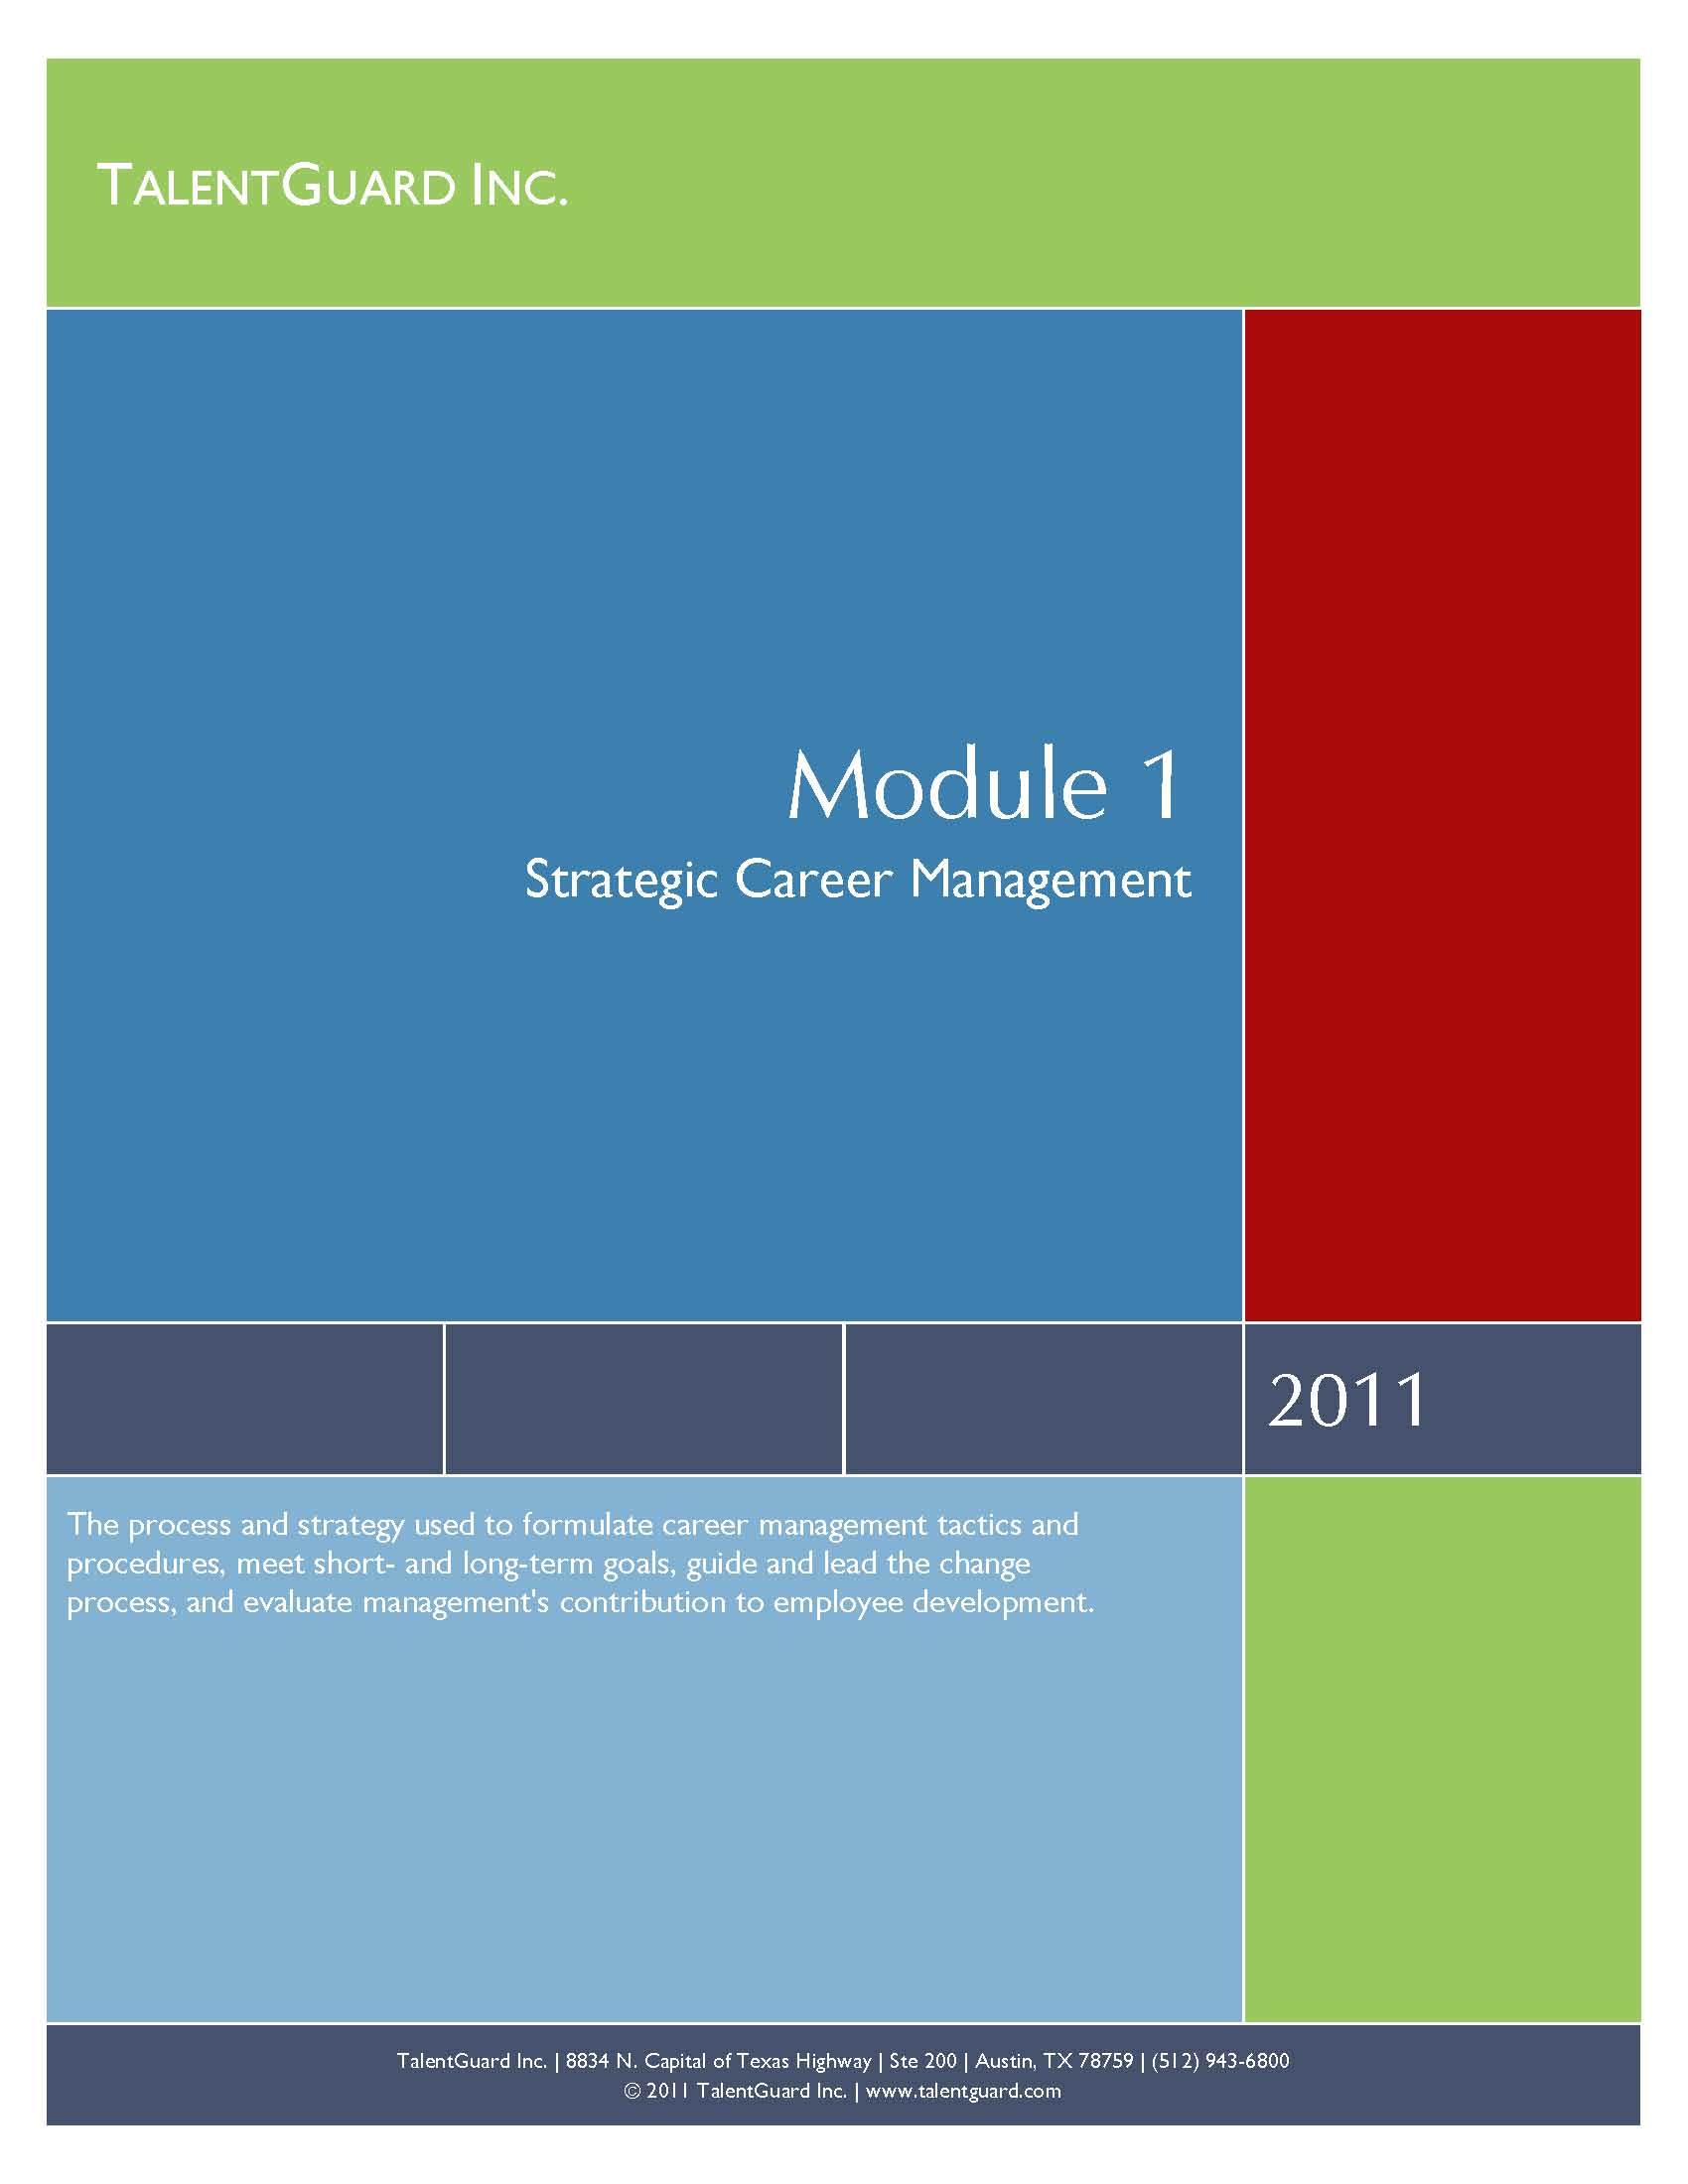 Strategic Career Management Module 004200